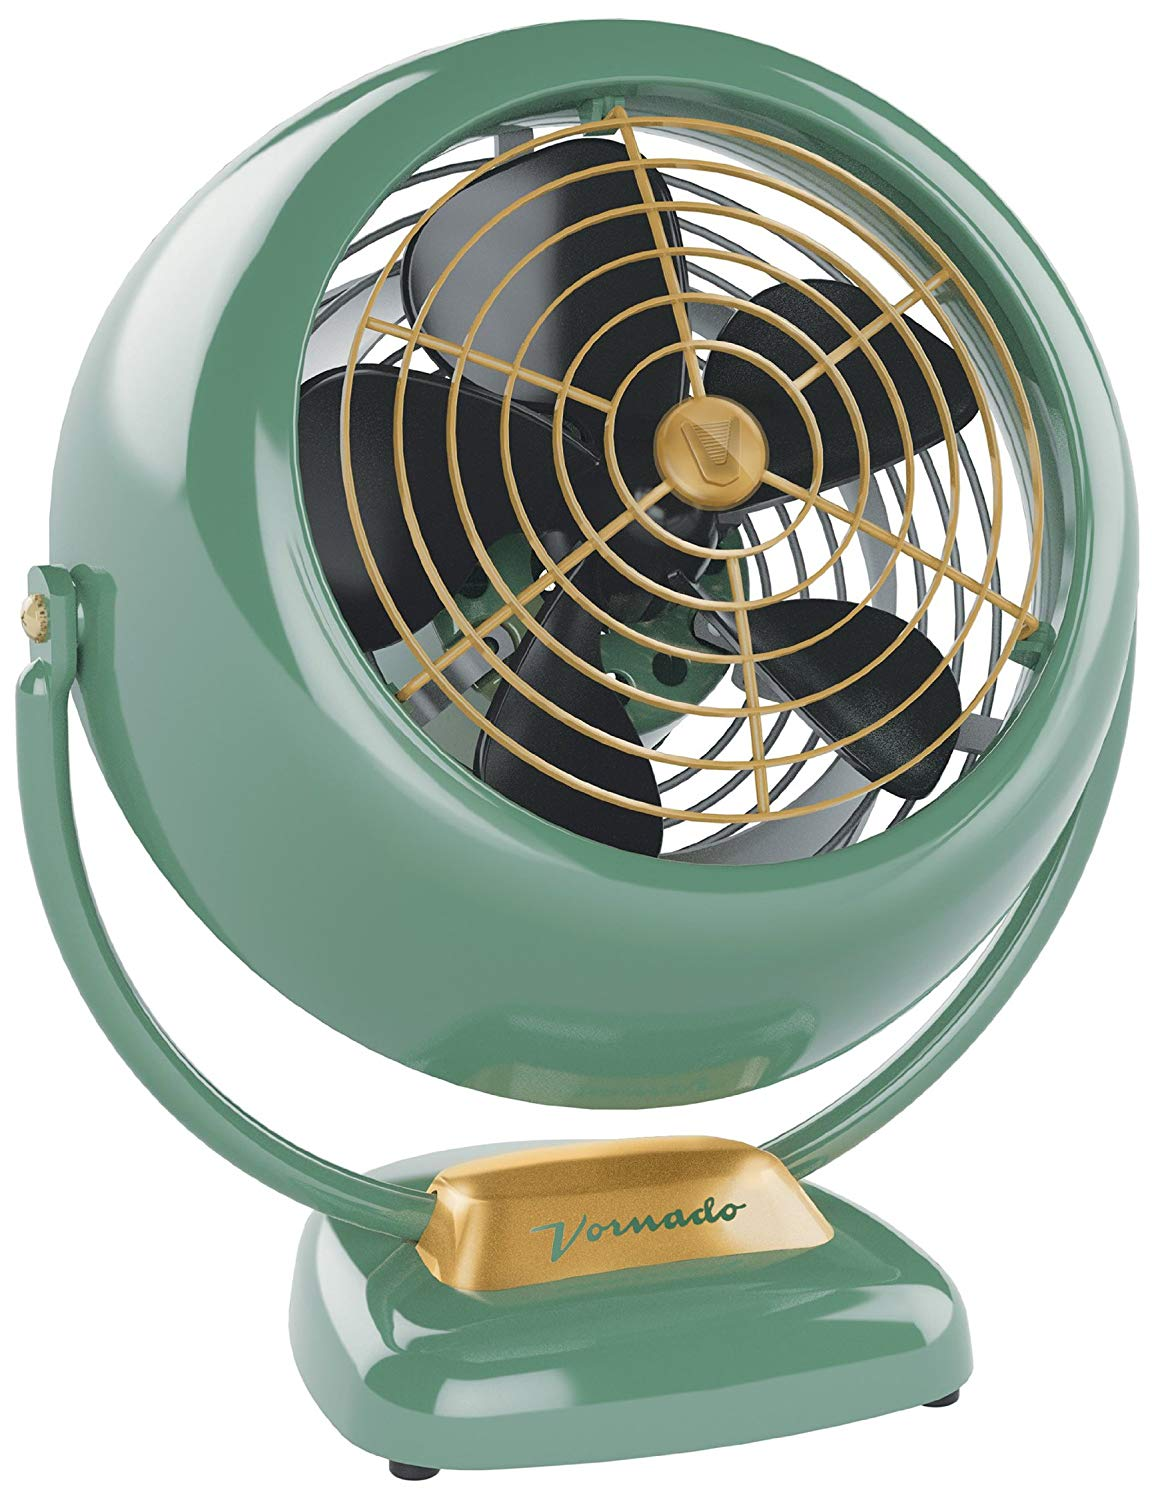 Vornado VFAN Vintage Air Circulator Fan